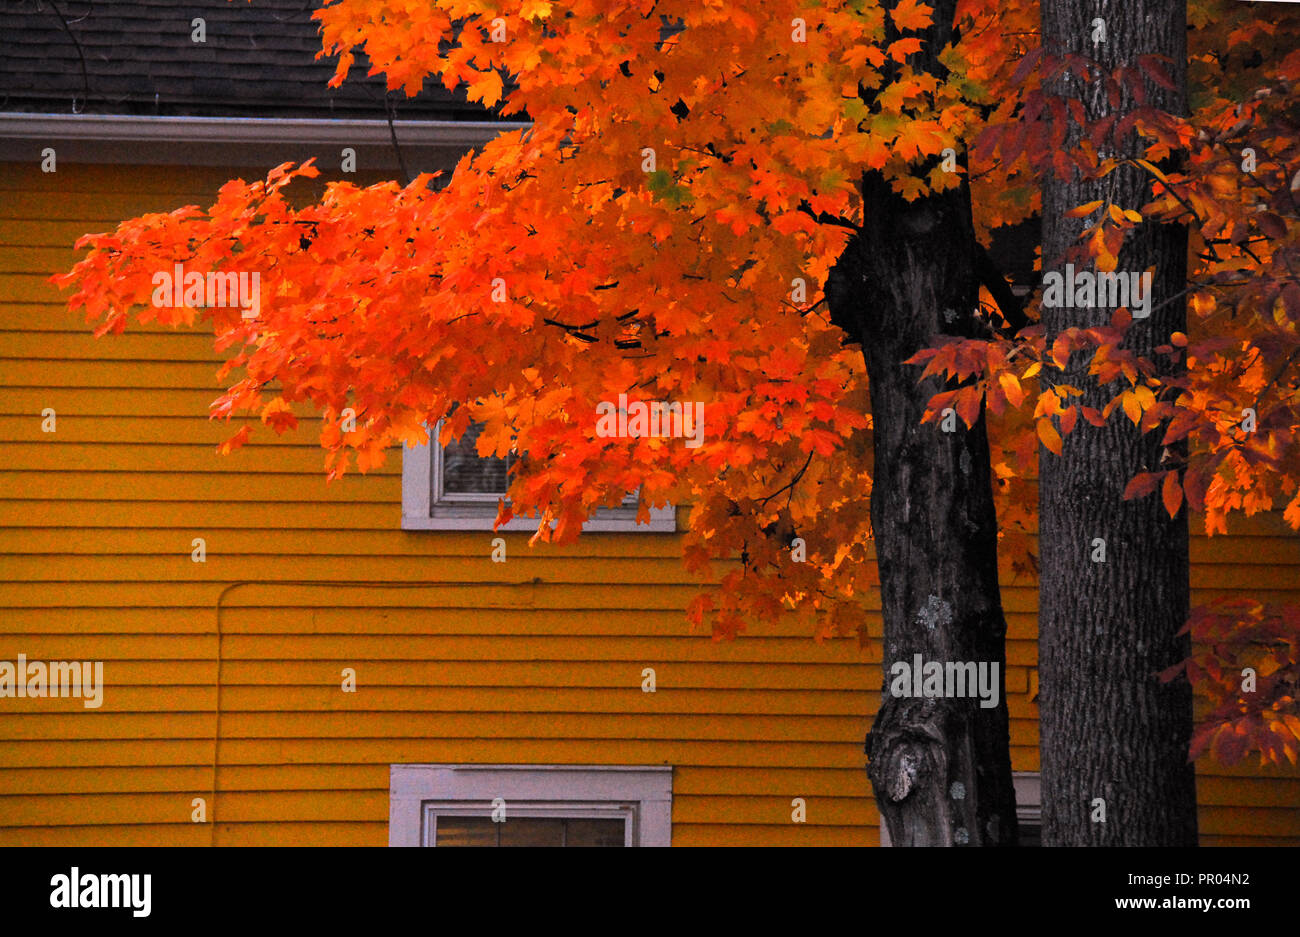 The bright orange colors of fall blending in with and complimenting similar house colors in Connecticut. Stock Photo